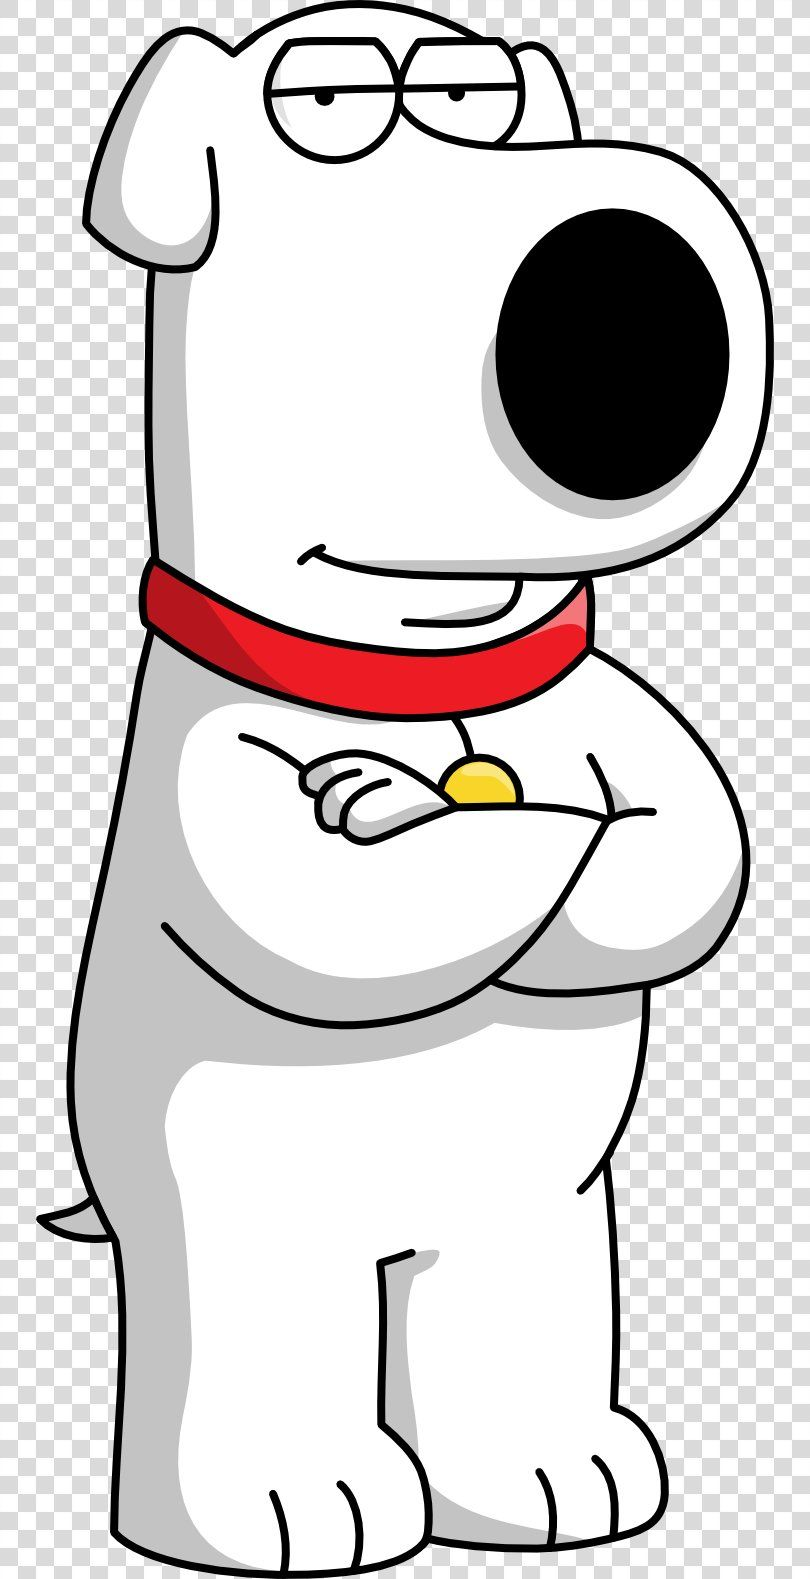 Brian Griffin Family Guy The Quest For Stuff Peter Griffin Stewie Griffin Meg Griffin Png Watercolor Cartoo Stewie Griffin Griffin Family Family Guy Stewie